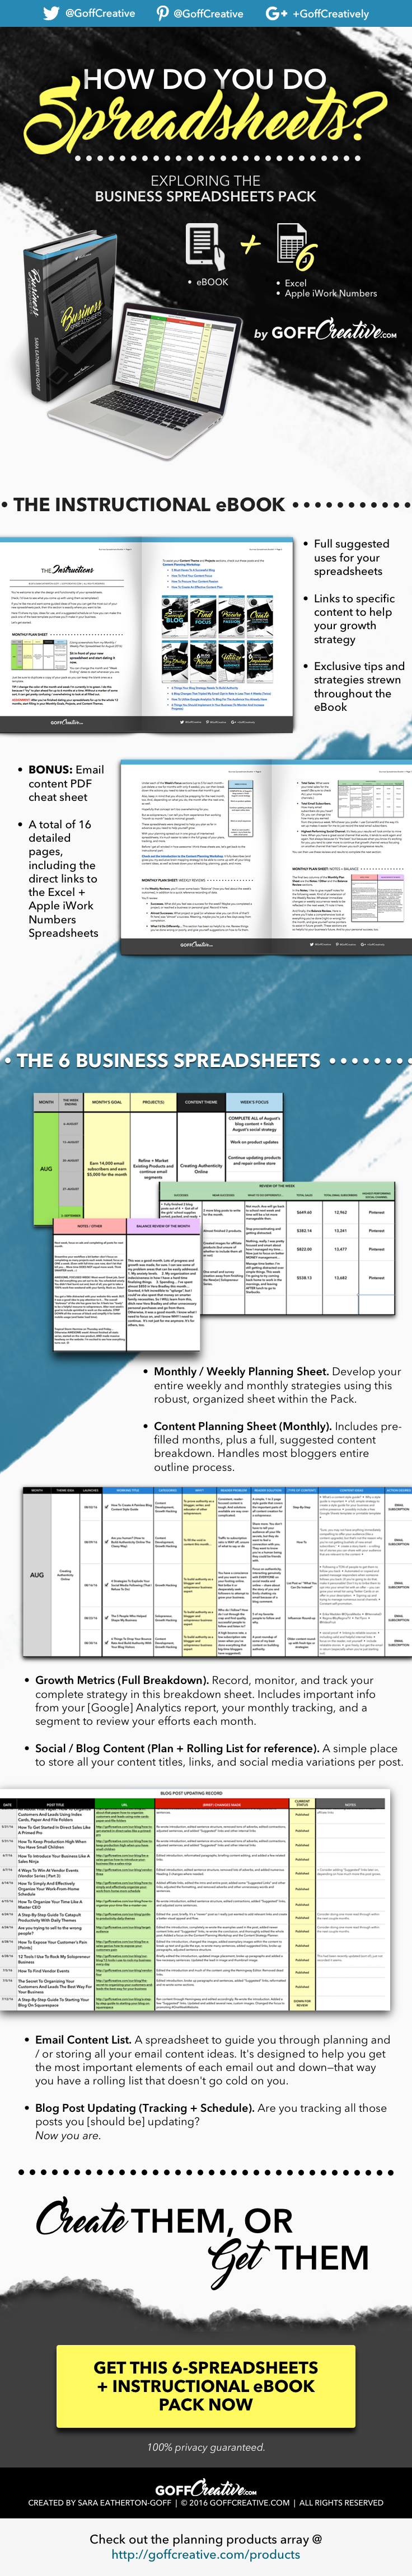 Whether you love using spreadsheets for your business or not, this infographic shows you key components to creating your own business system, or getting the one I built instead. Click through to get more details or grab your full pack, or Save this for later!